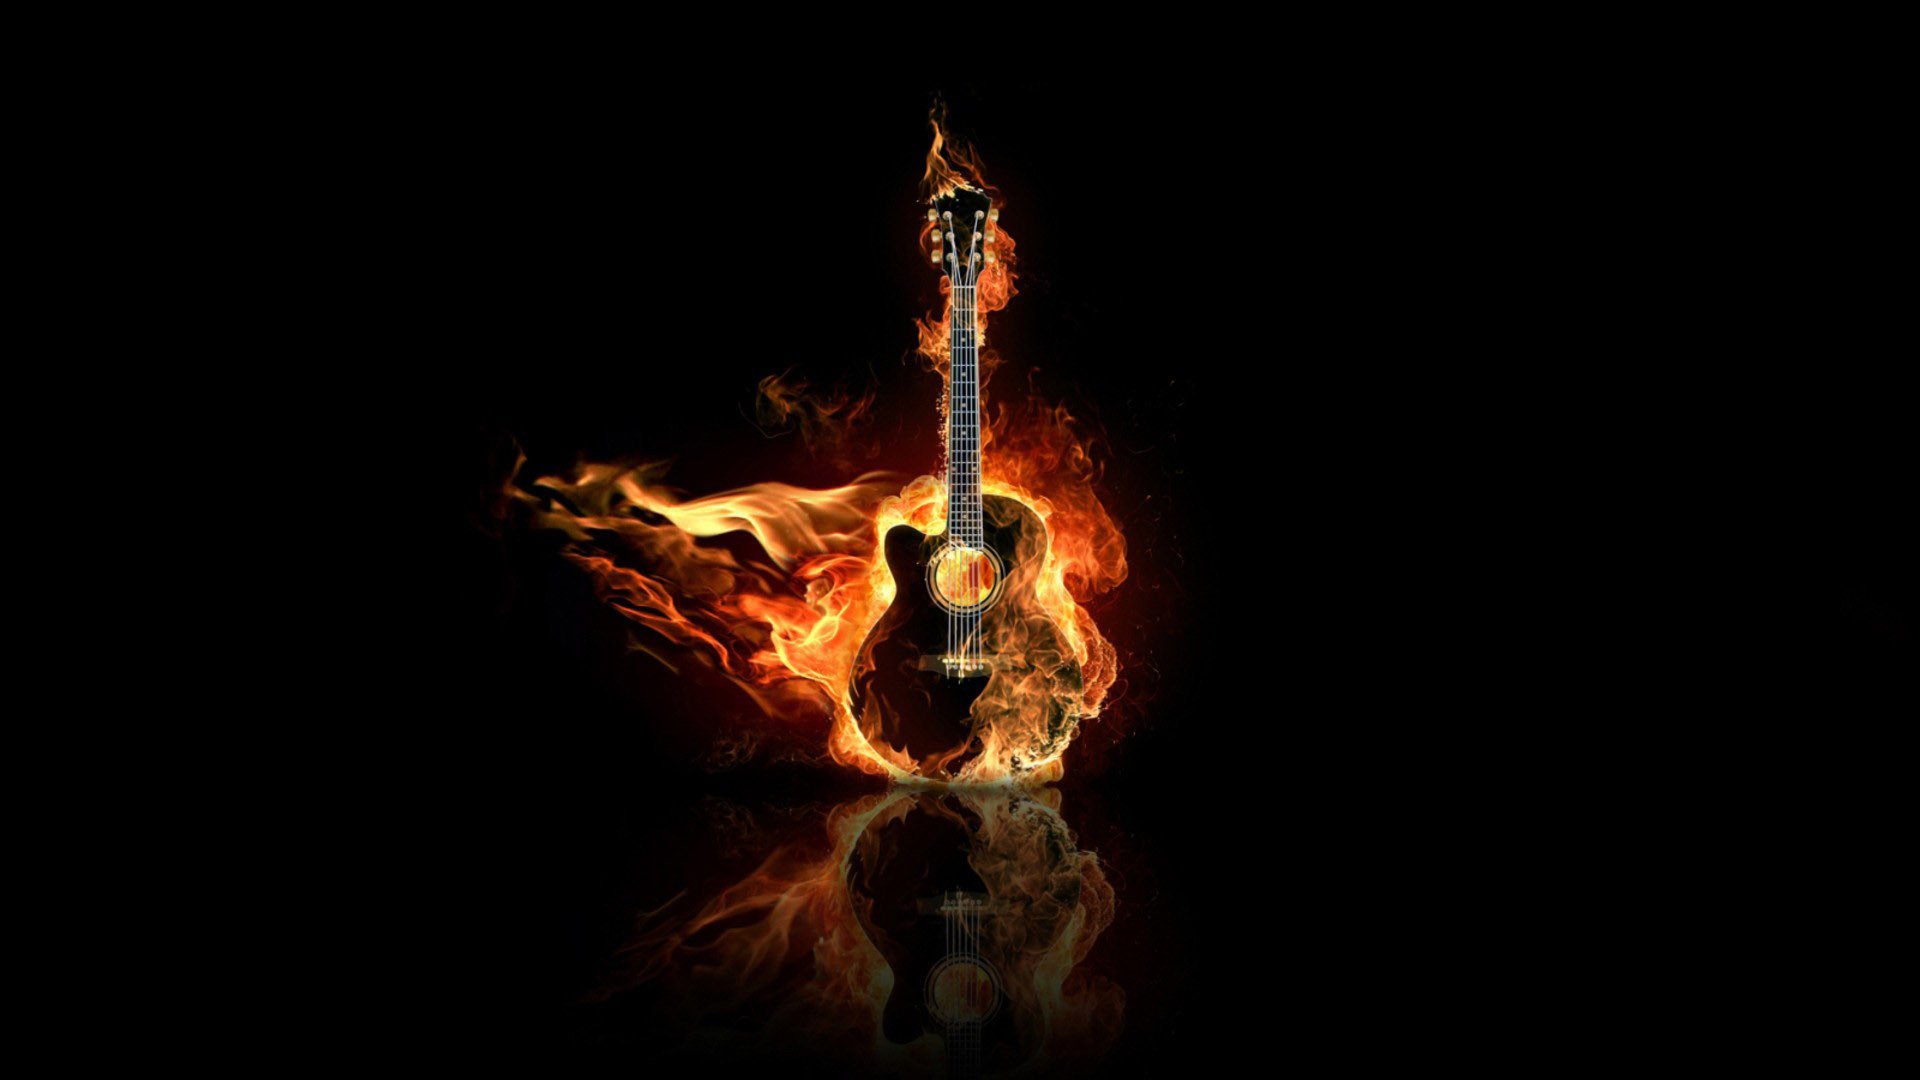 1920x1080 Awesome Beautiful Guitar Pics